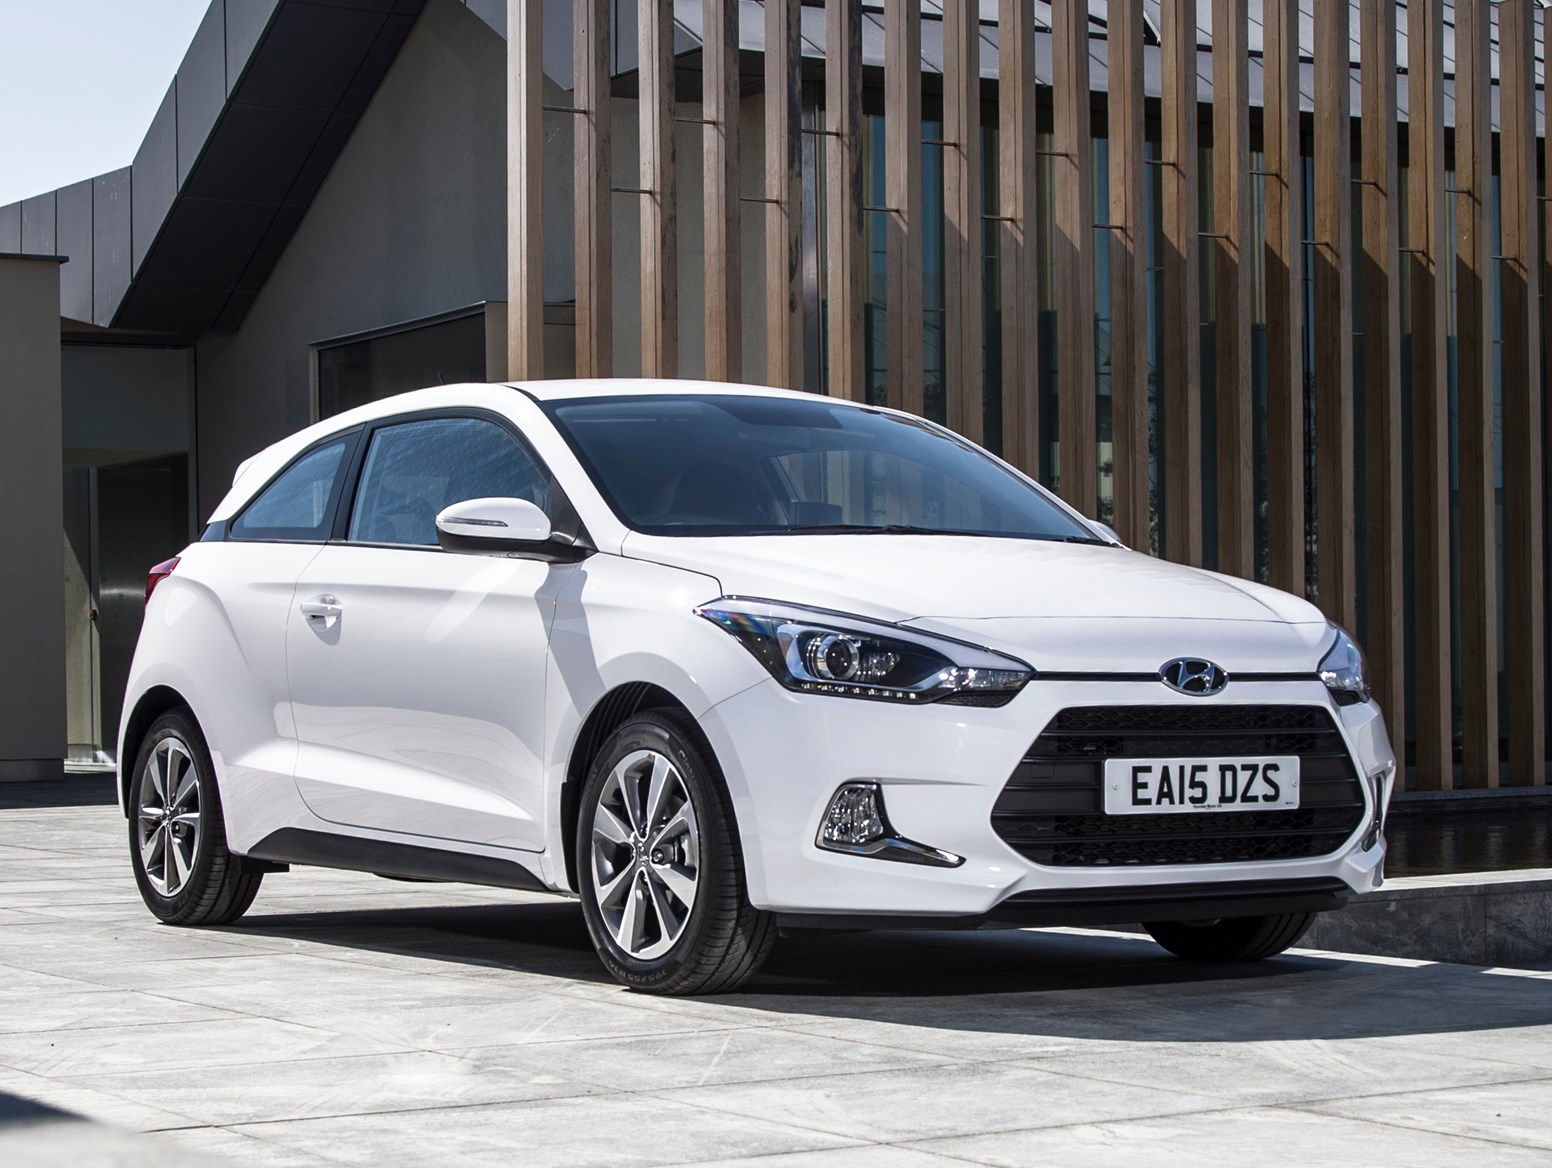 Hyundai I20 Coupe 2015 Review